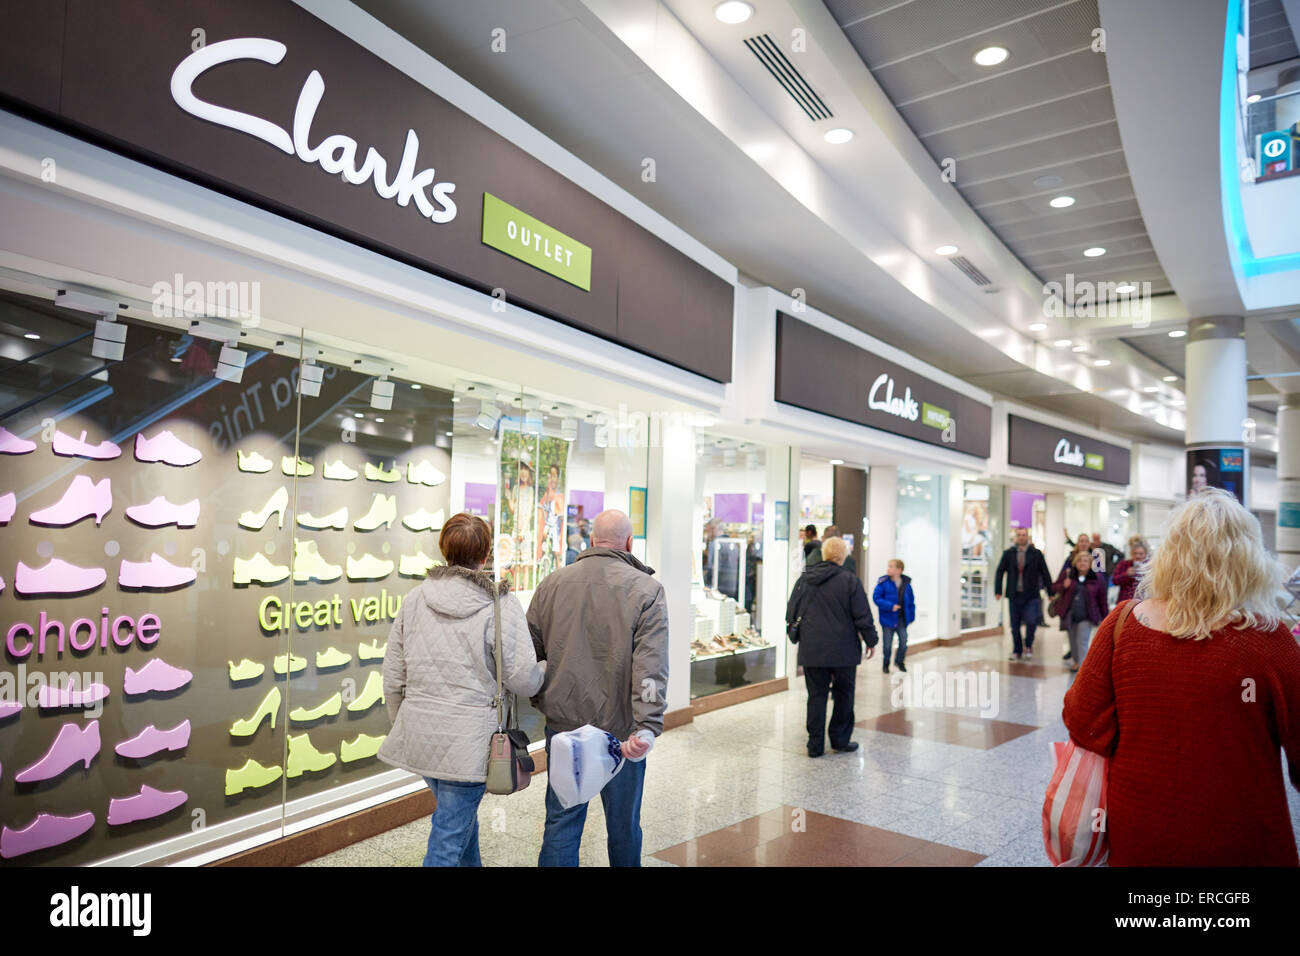 f877f48f20becb Salford Quays f Lowry Outlet shopping mall clarks store shop front People  crowds many crowded community